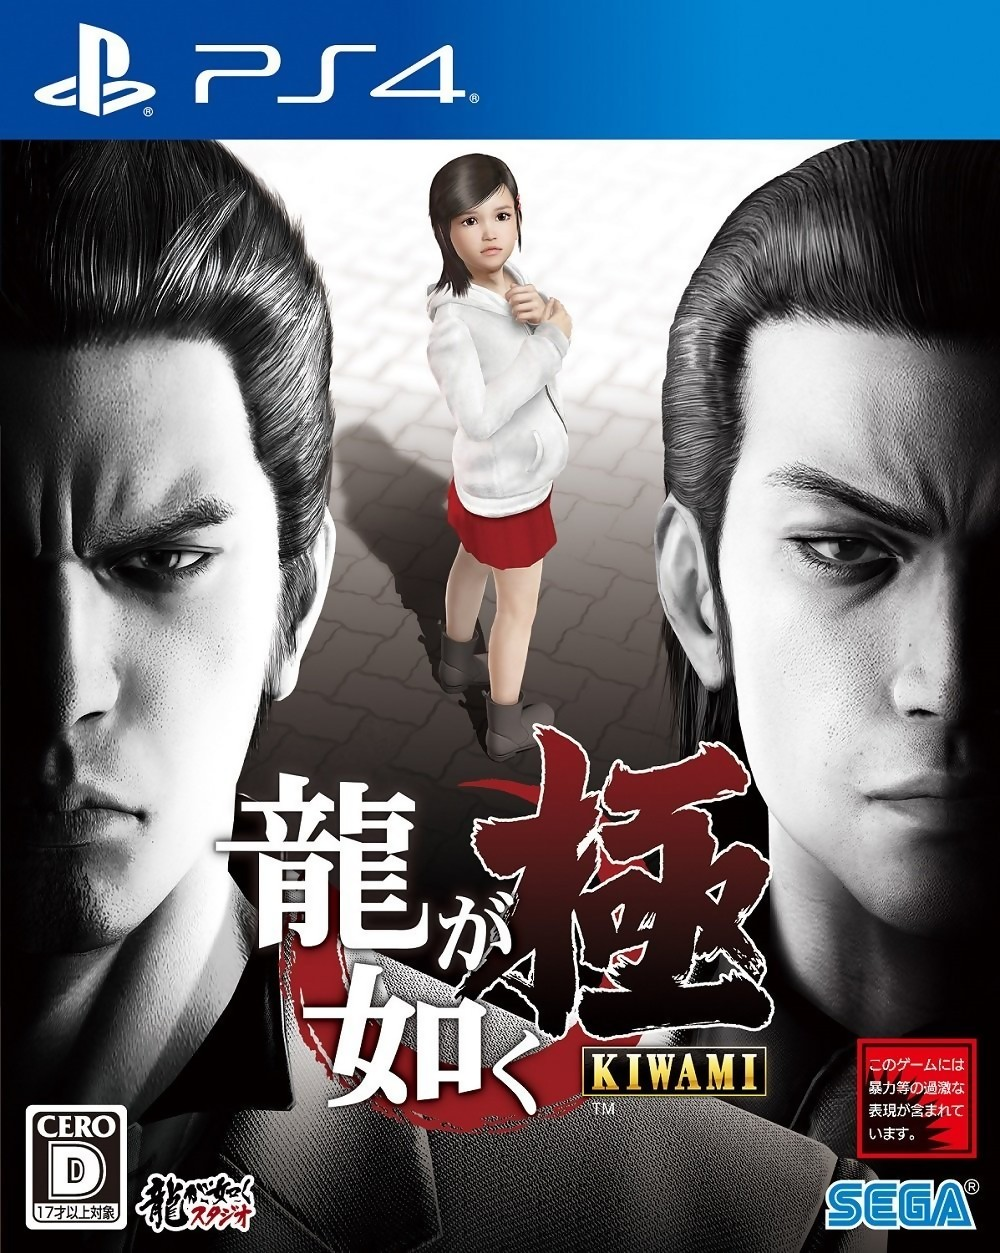 yakuza dating The yakuza are japan's organized crime syndicates, like the triads in other parts of asia or the mafia in the west yet the operations and social roles of.